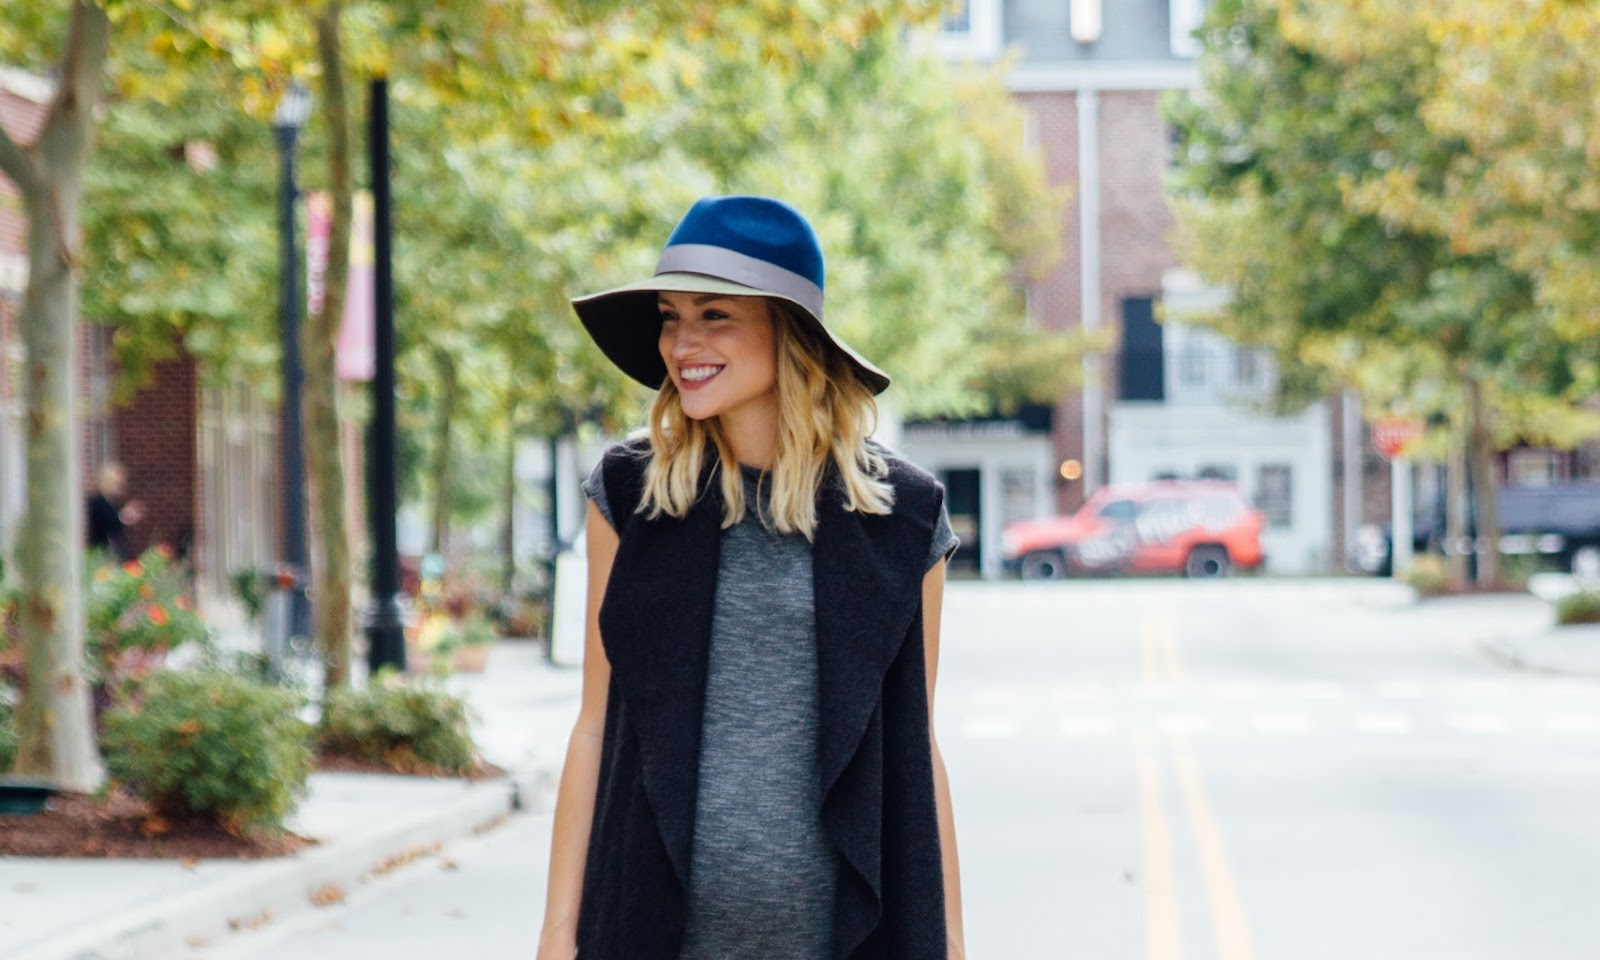 Simple Pleasures : Early Fall Layers